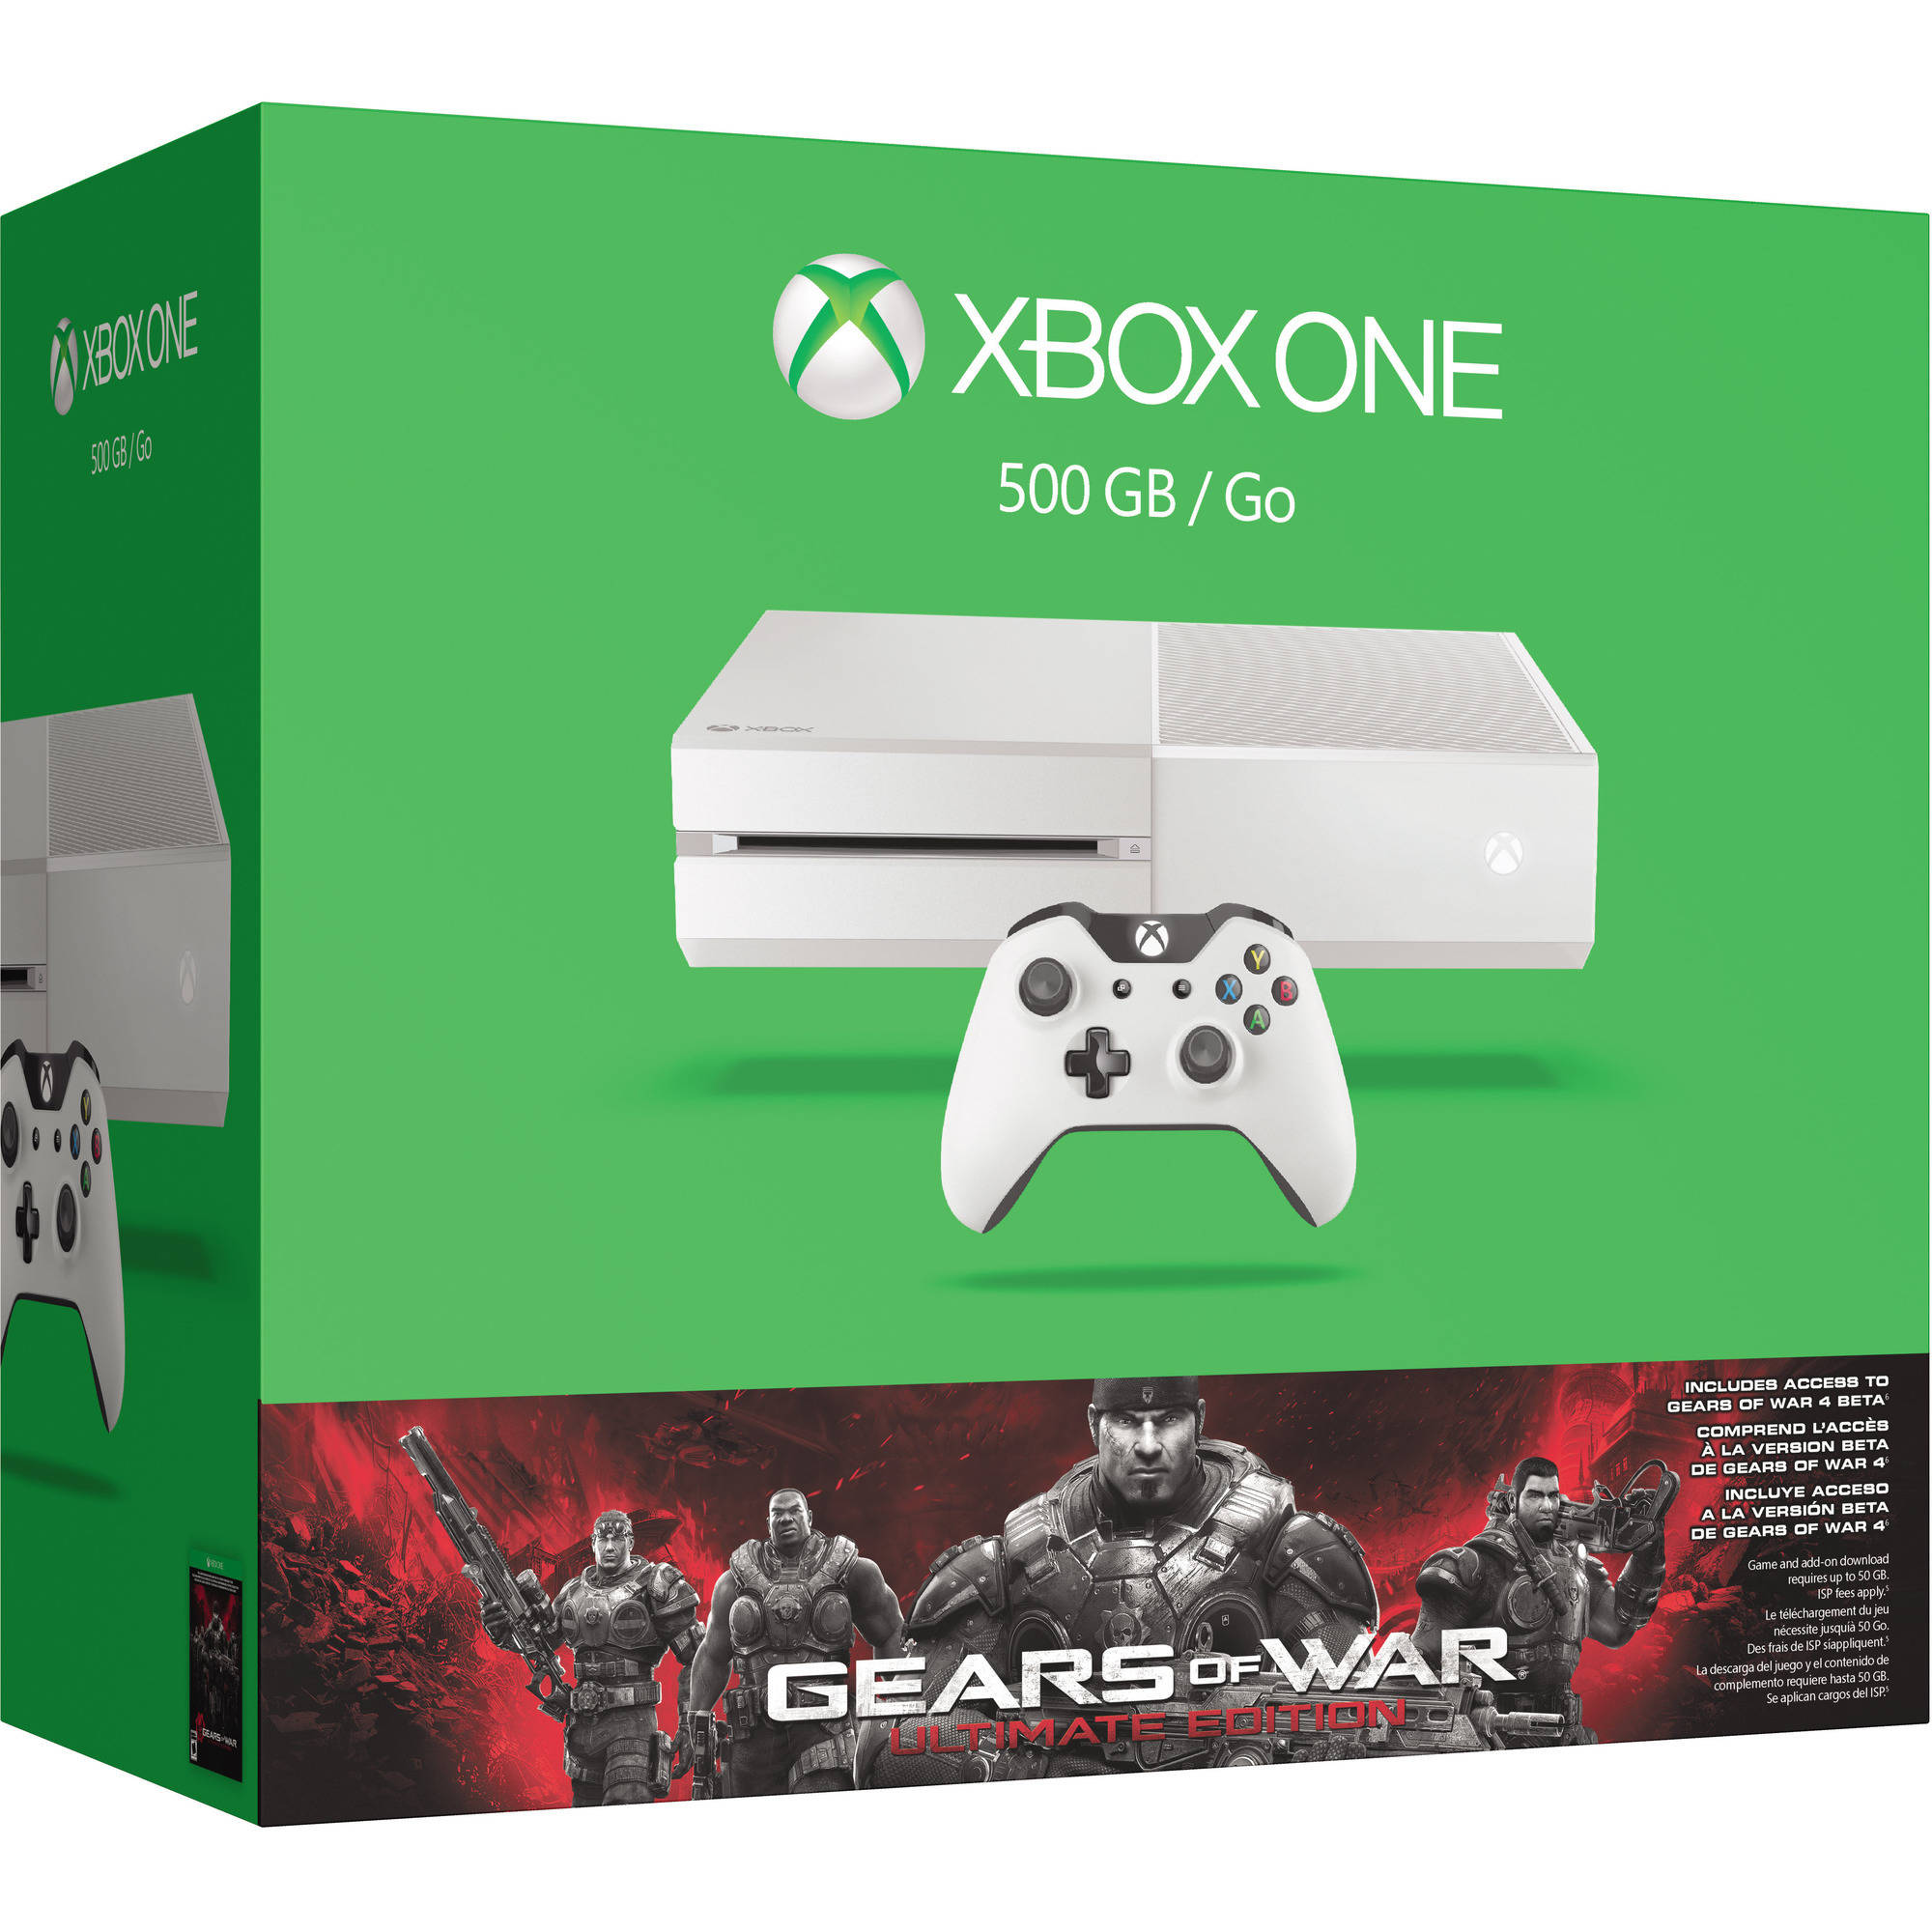 Xbox One White 500GB Gears of War Special Edition Console Bundle - Walmart Exclusive